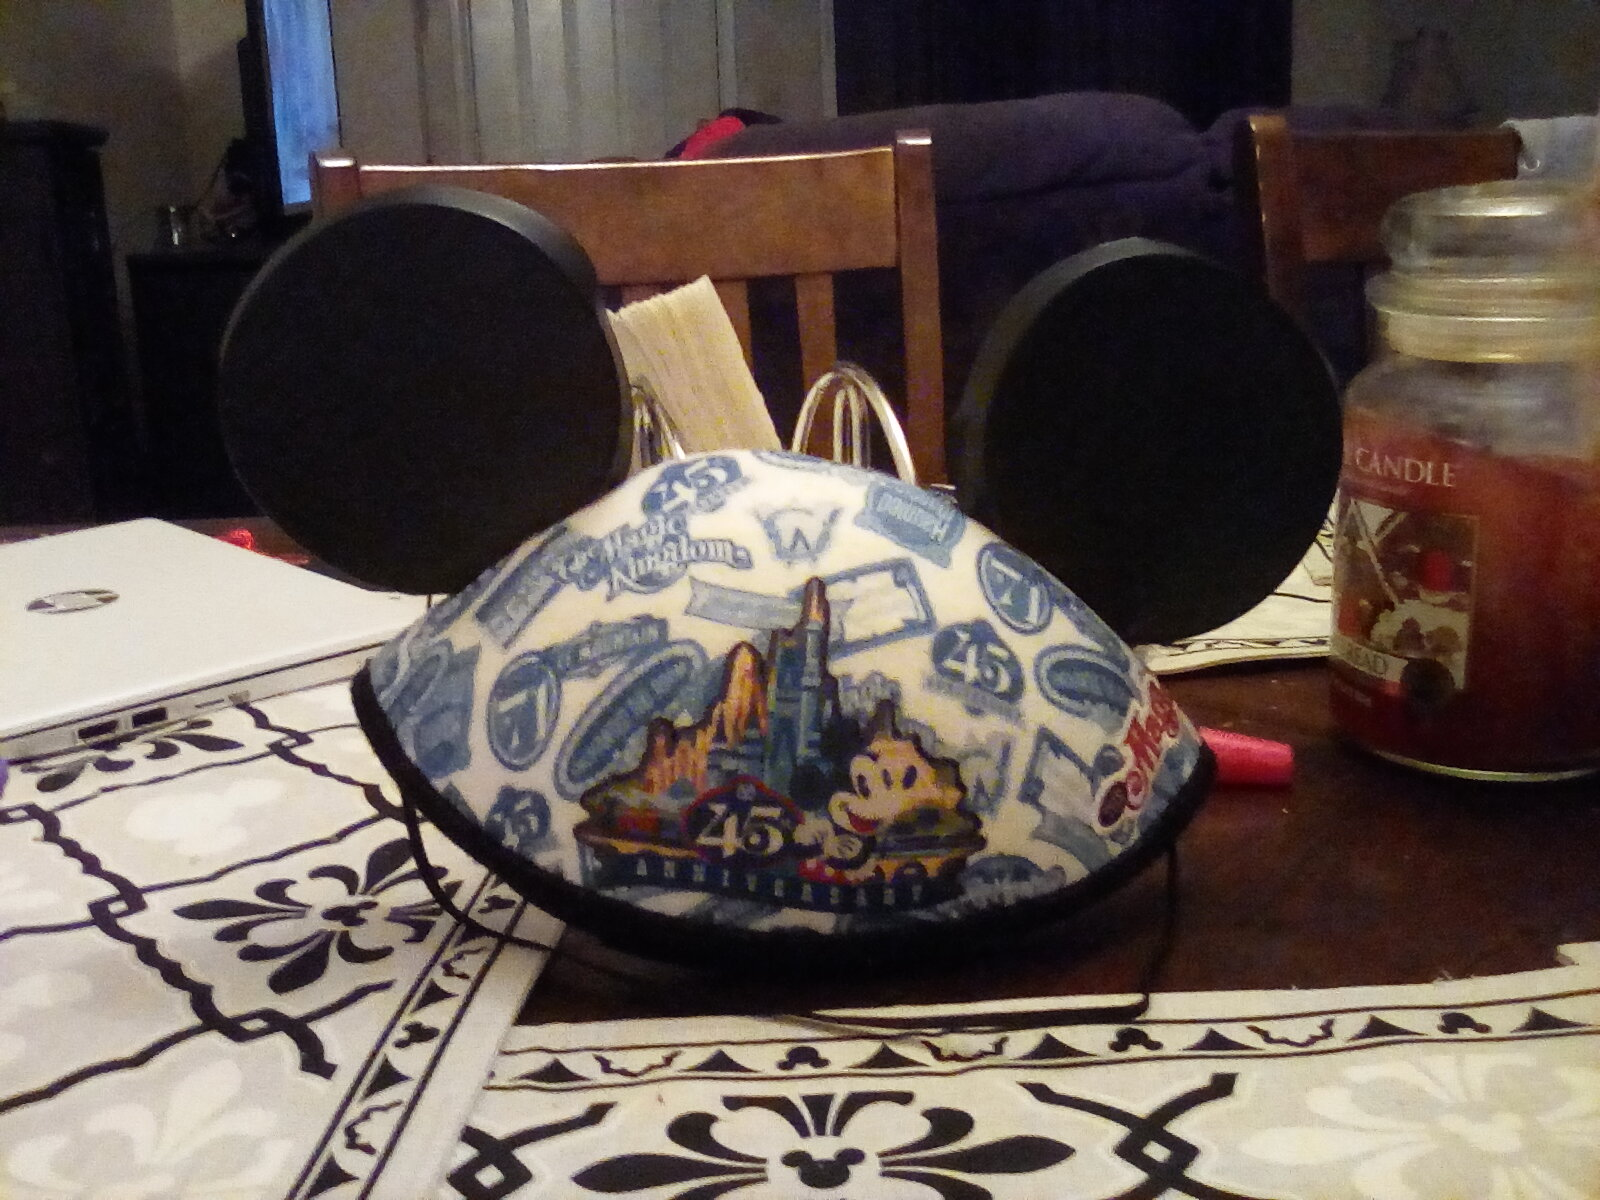 45th anniversary Mickey mouse ears